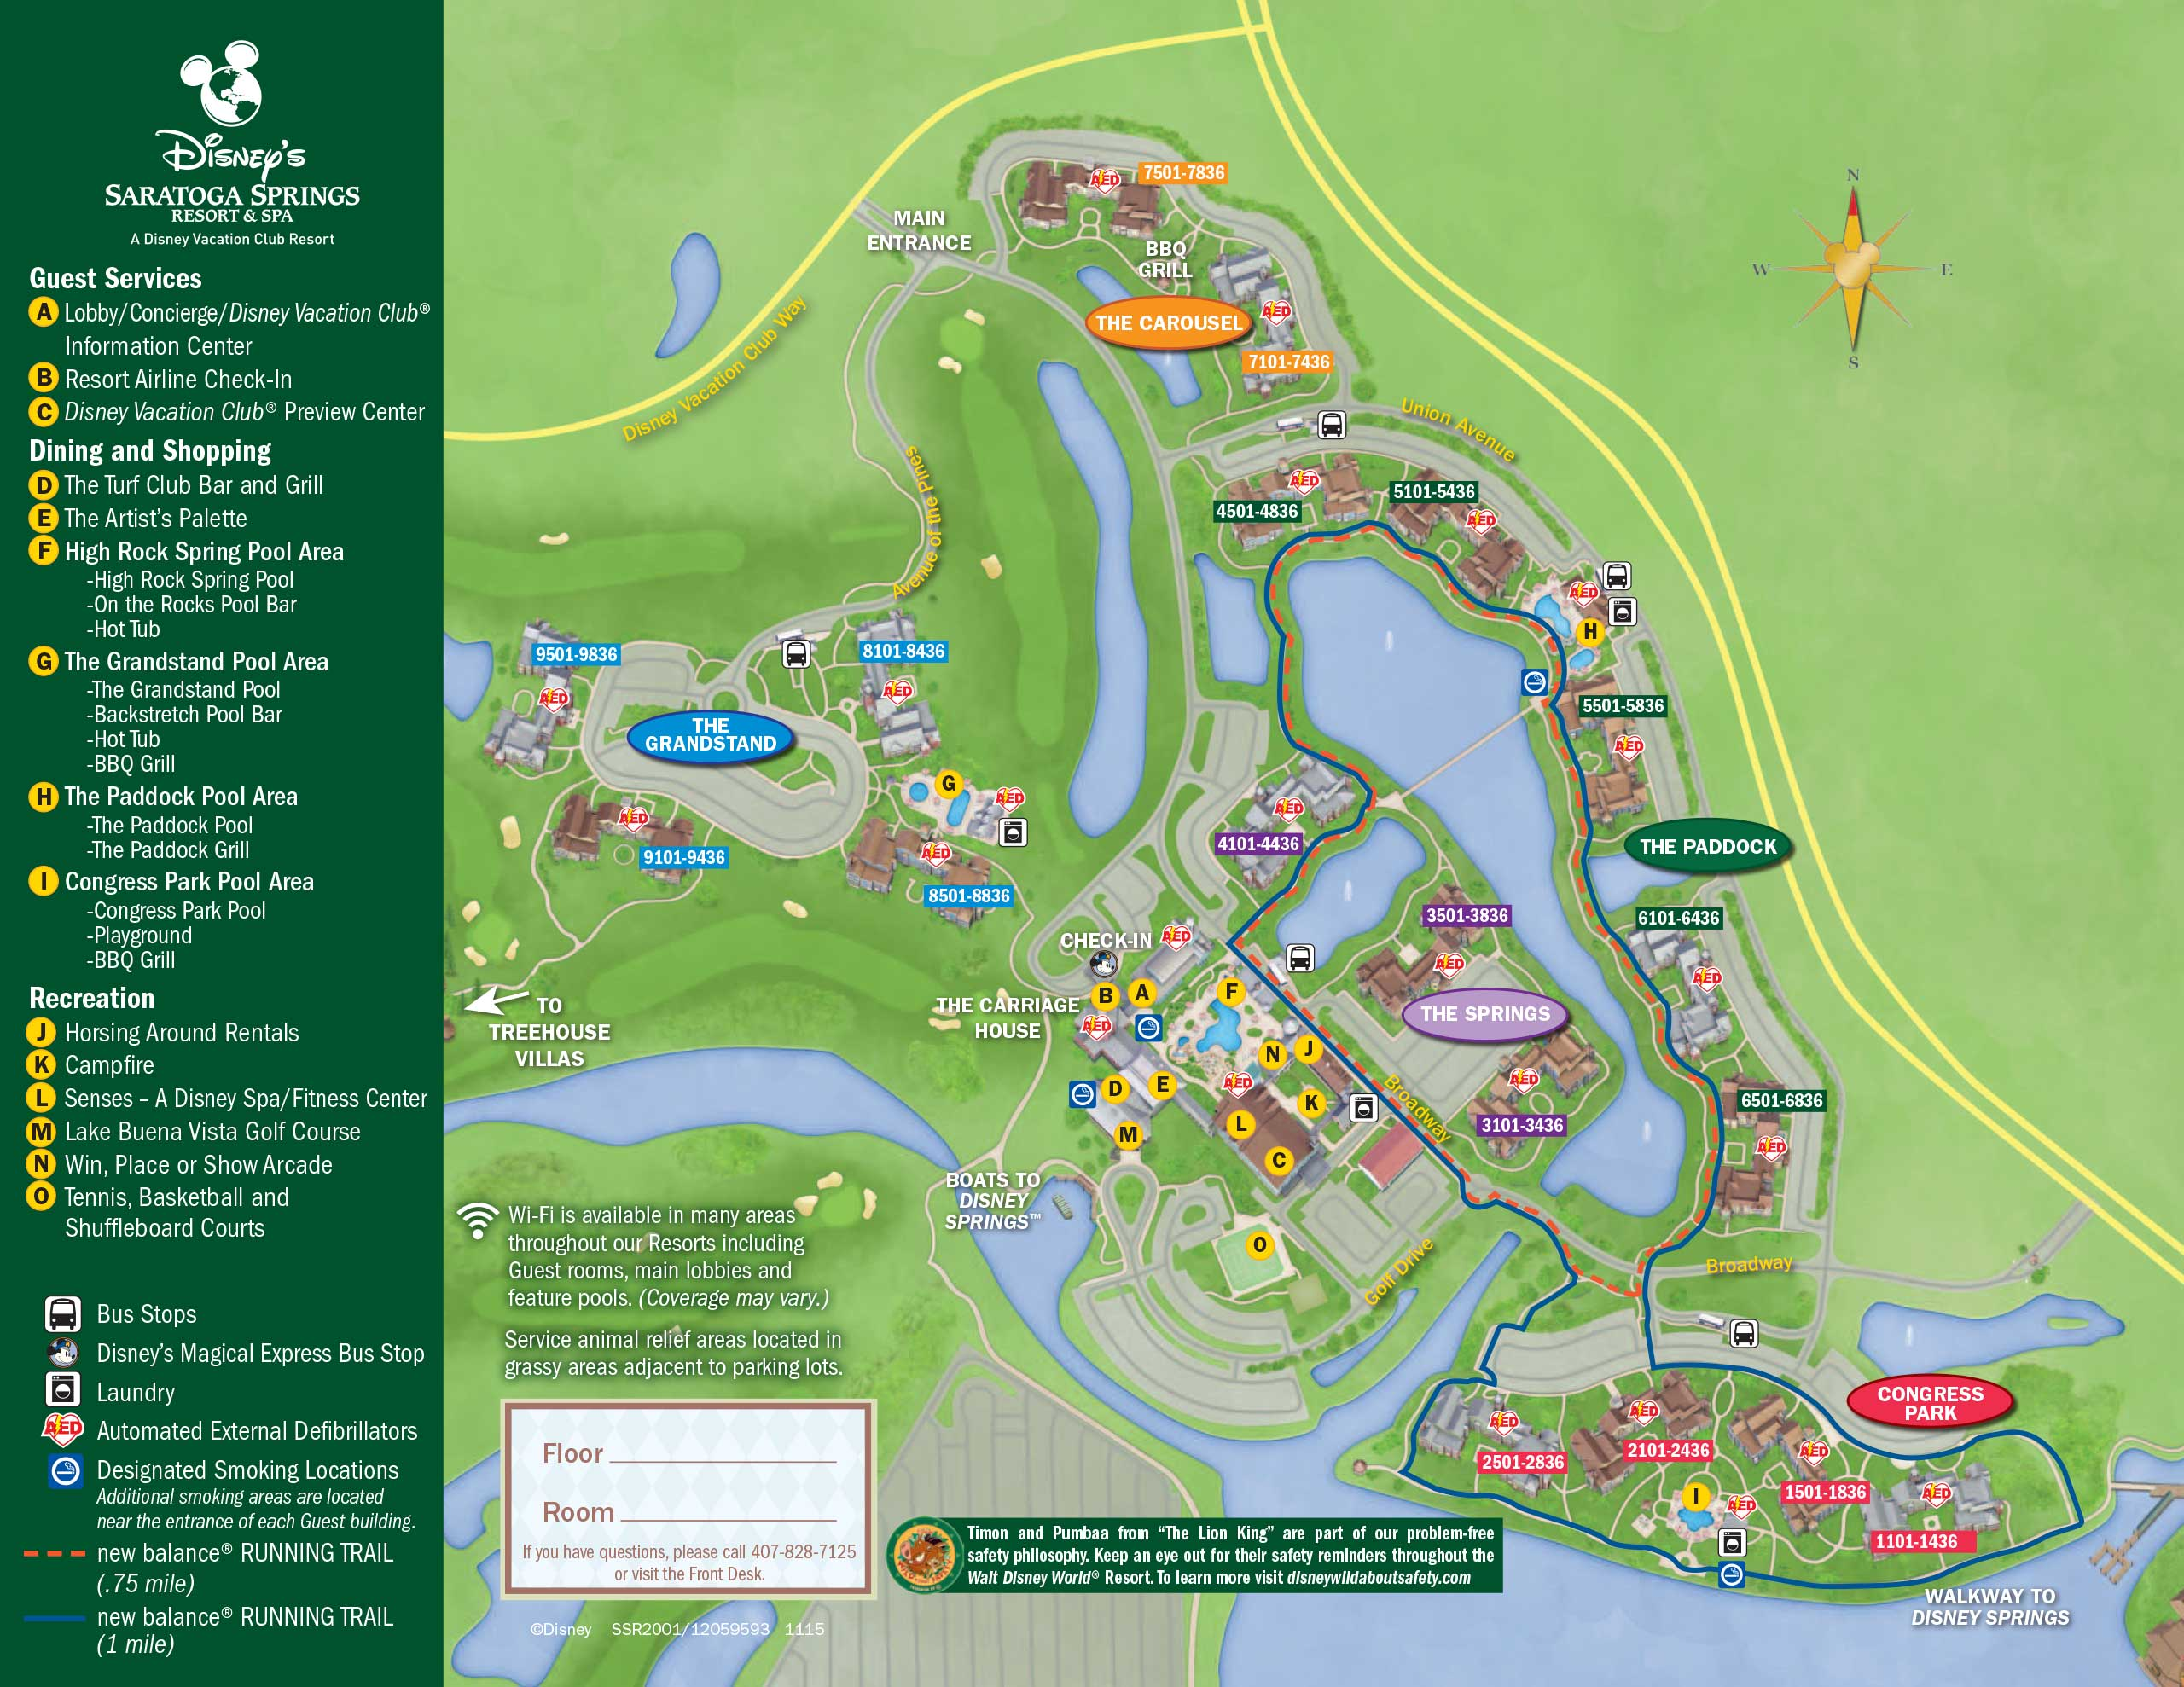 April 2017 Walt Disney World Resort Hotel Maps - 30